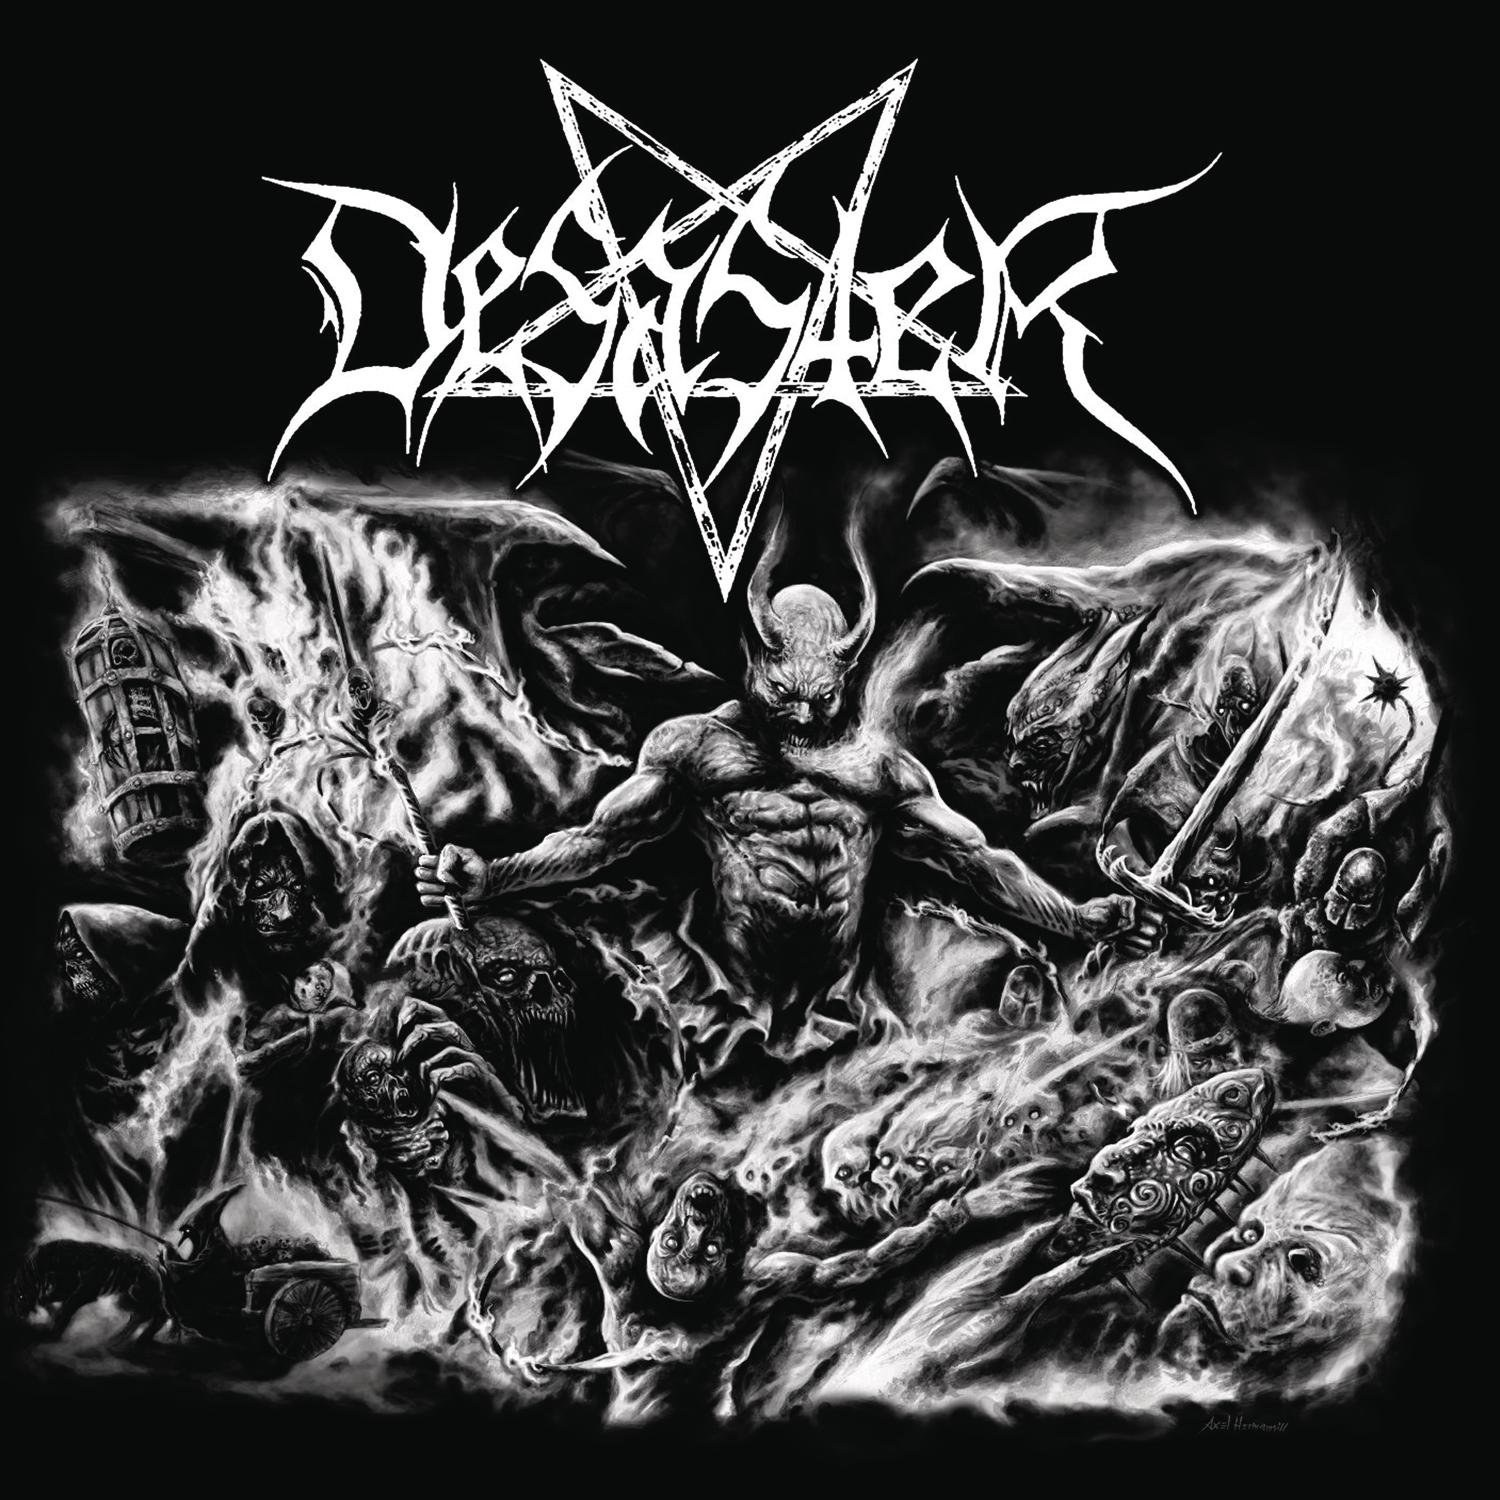 Review for Desaster - The Arts of Destruction